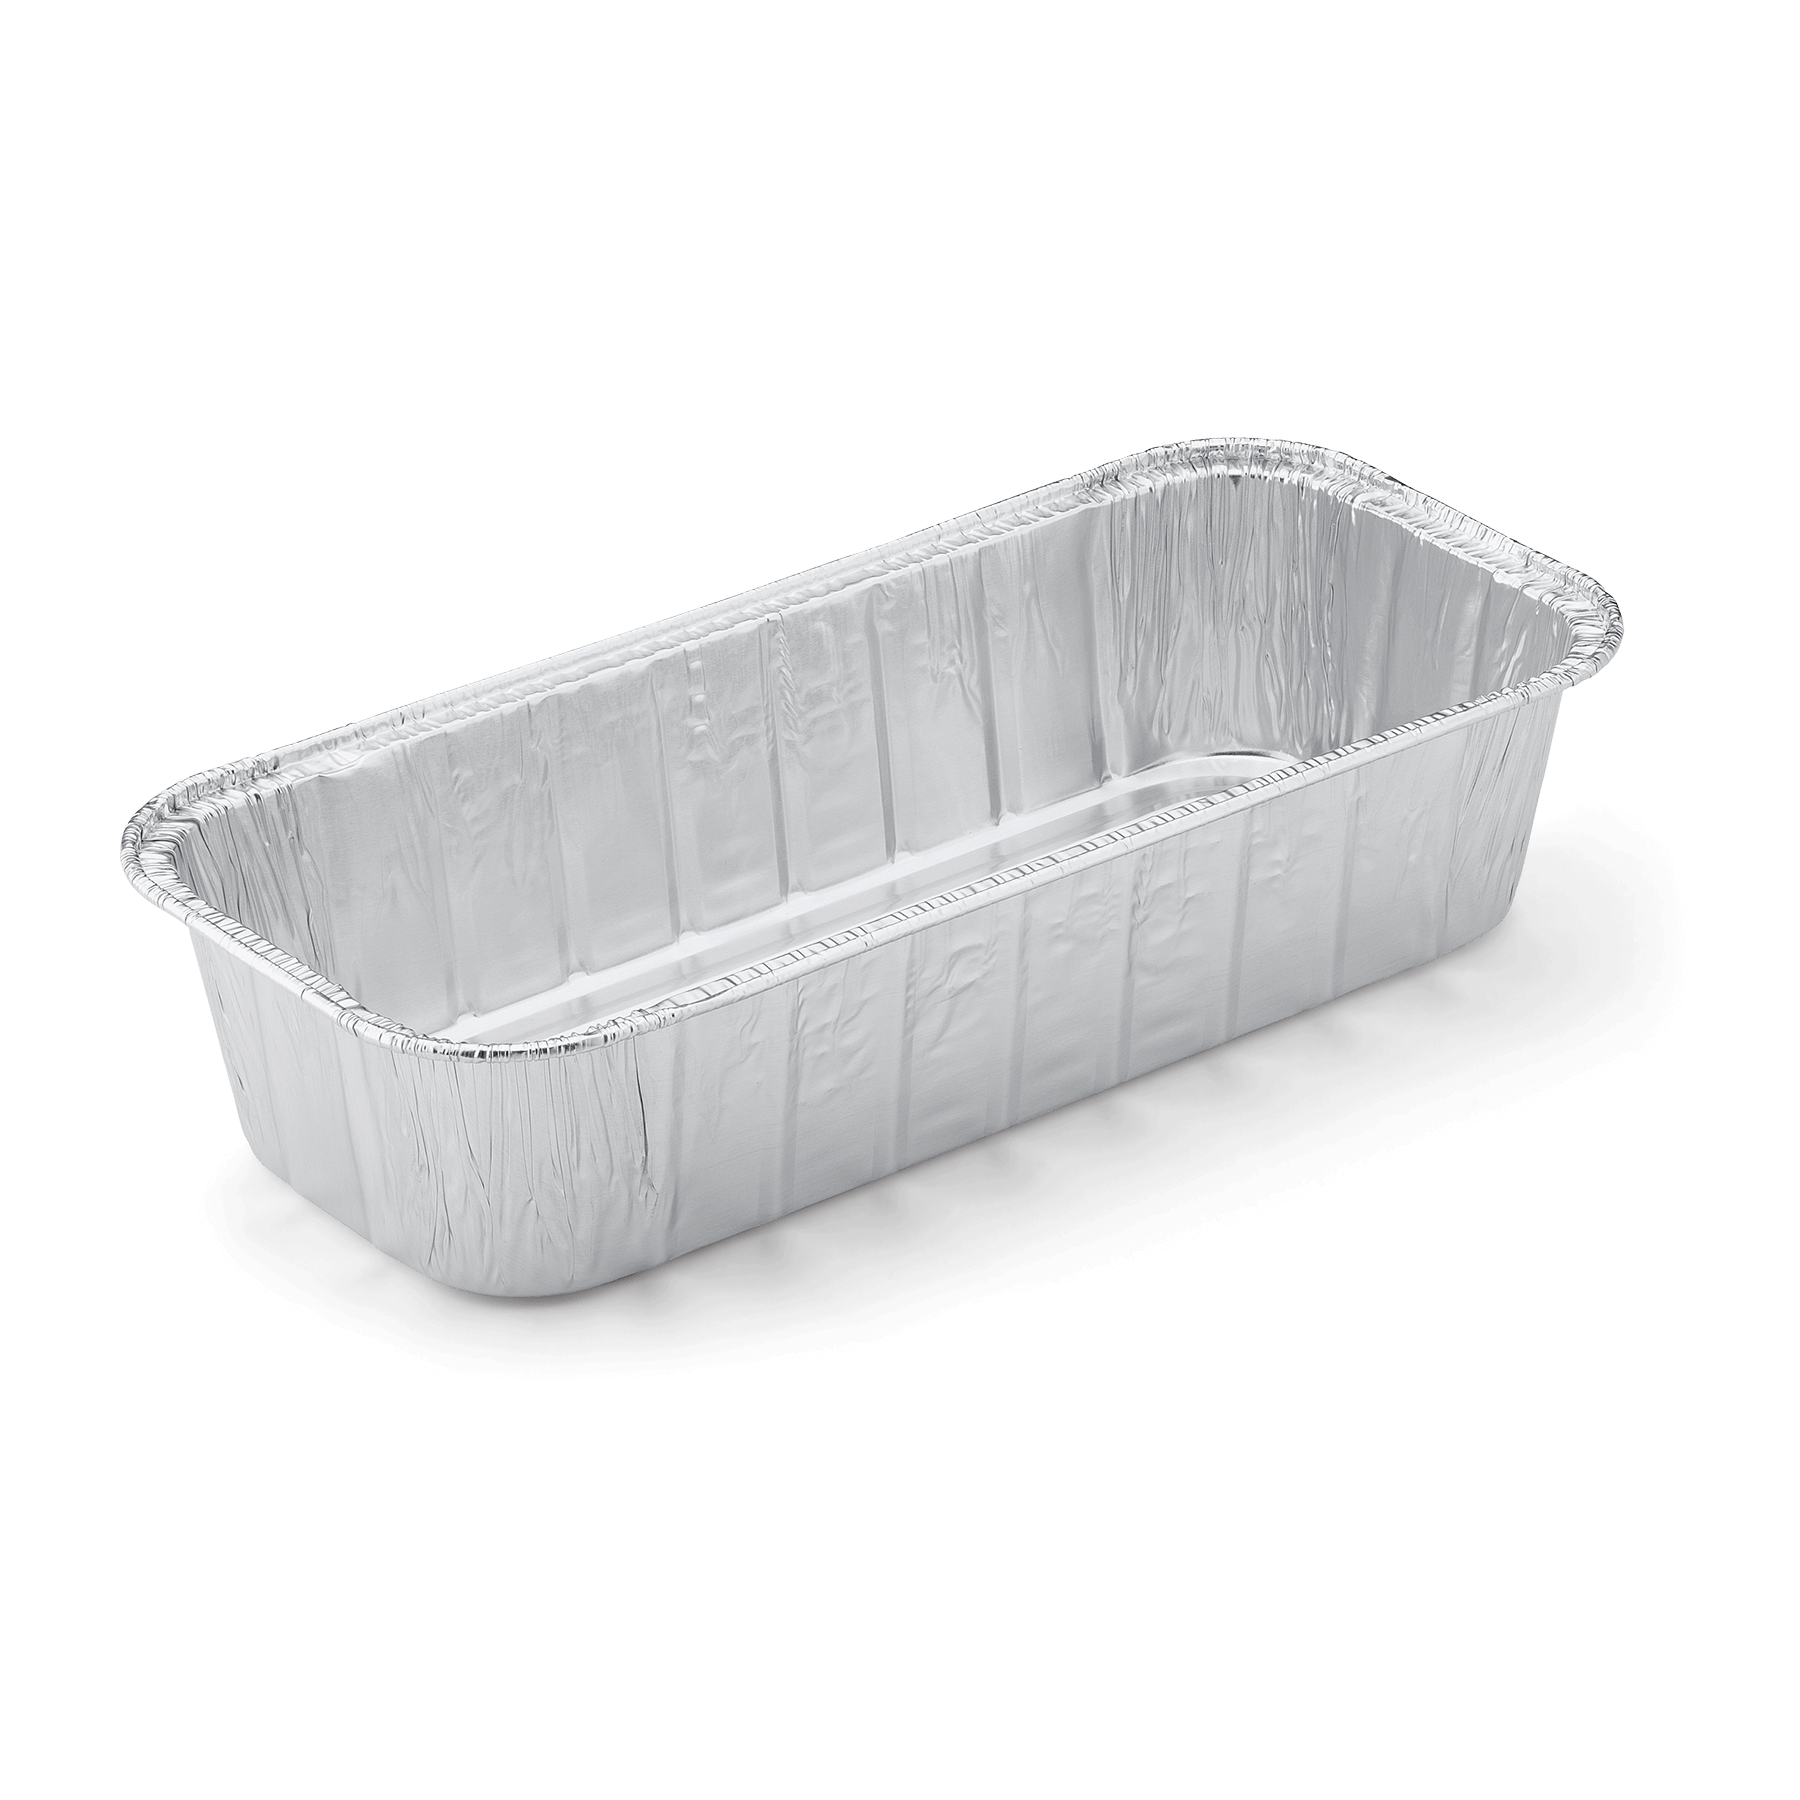 A simple drip pan can save you from a whole lot of maintenance. They line the grease tray of your grill to make the disposal of grease easy and clean. | Out Of Carton Dimensions 2.5